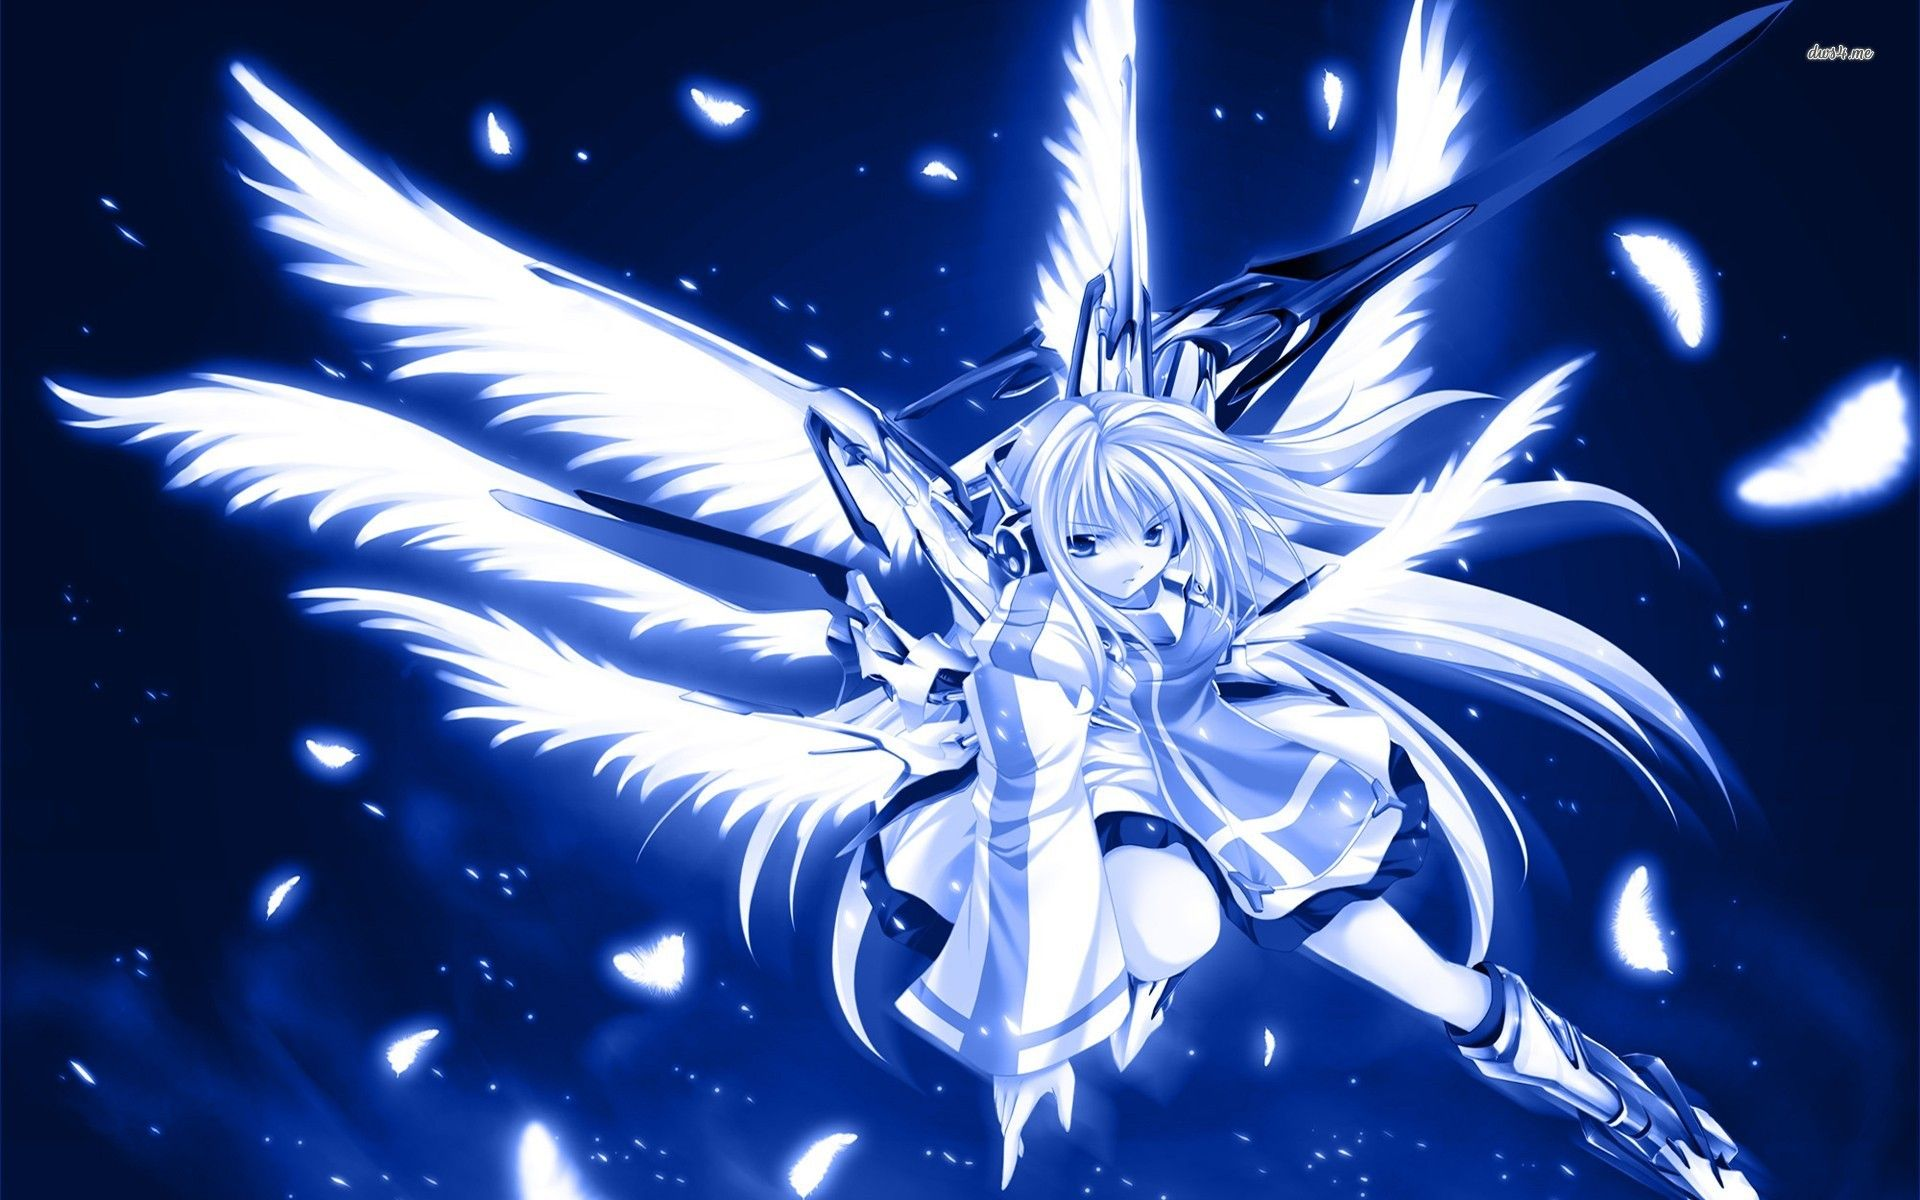 animated angel wallpaper  Animated Wallpapers Wallpaper Bang | wallpapers | Pinterest ...